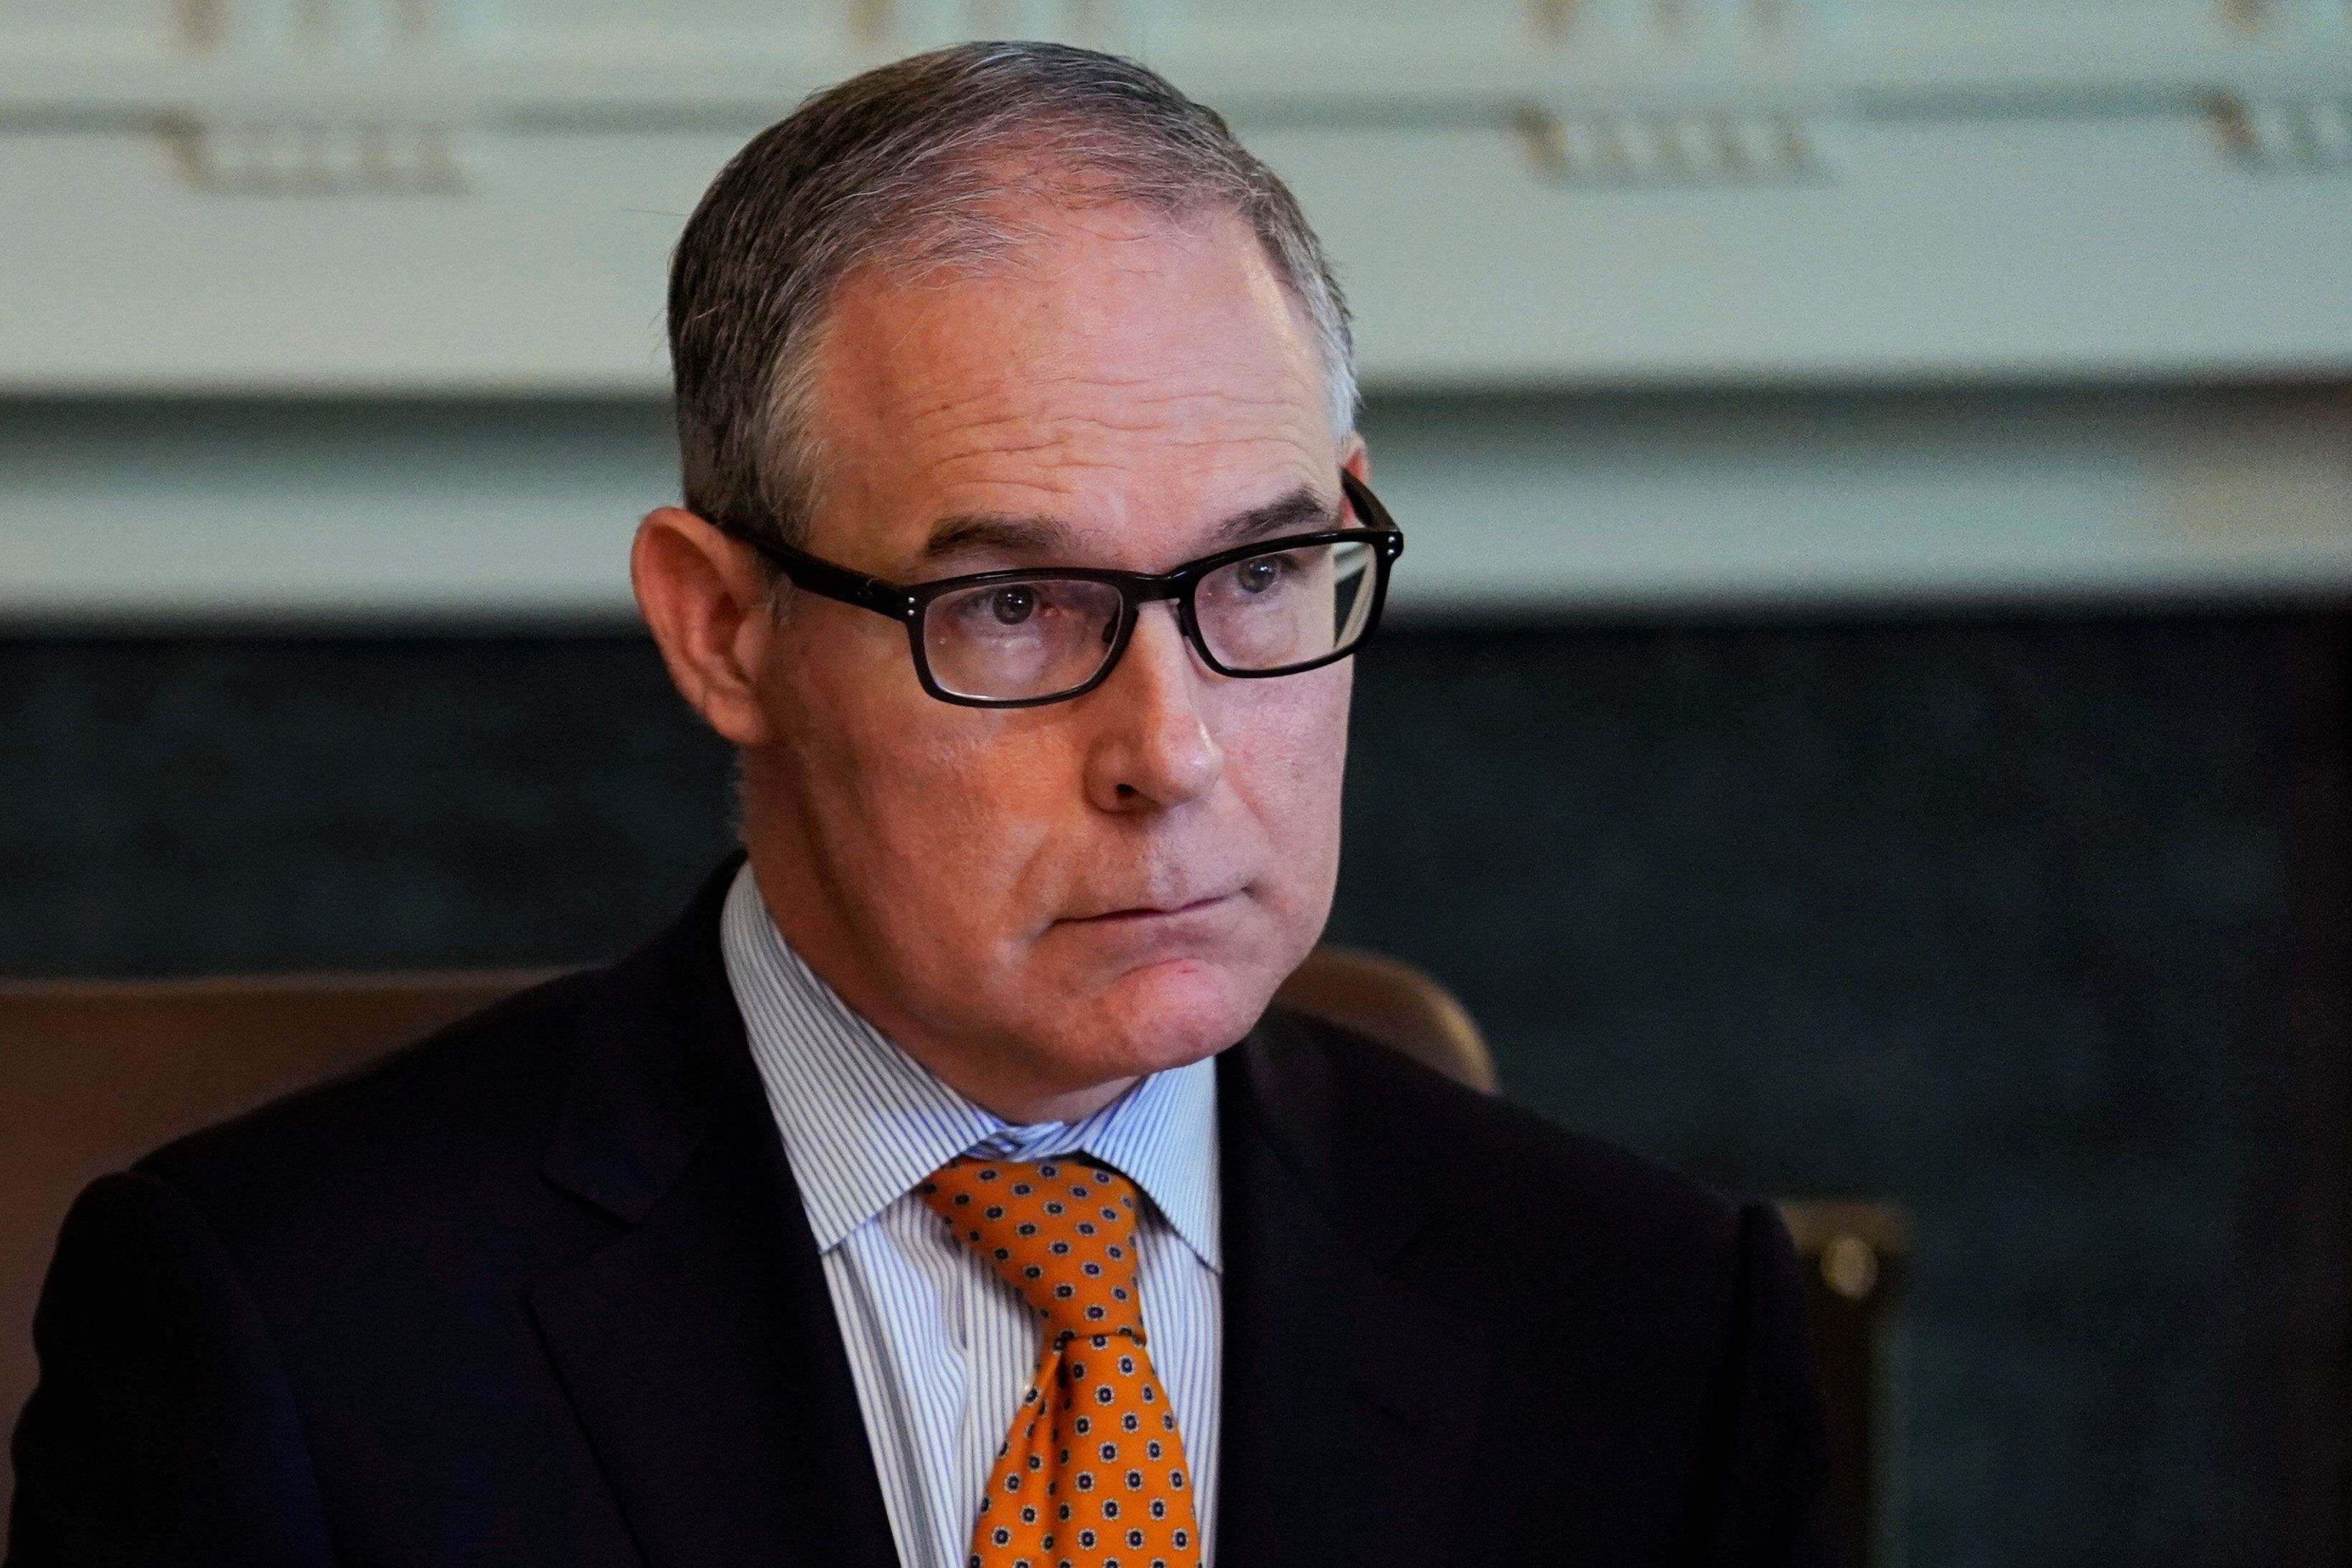 Environmental Protection Agency (EPA) Administrator Scott Pruitt attends a cabinet meeting with U.S. President Donald Trump at the White House in Washington, U.S. June 21, 2018.  REUTERS/Jonathan Ernst